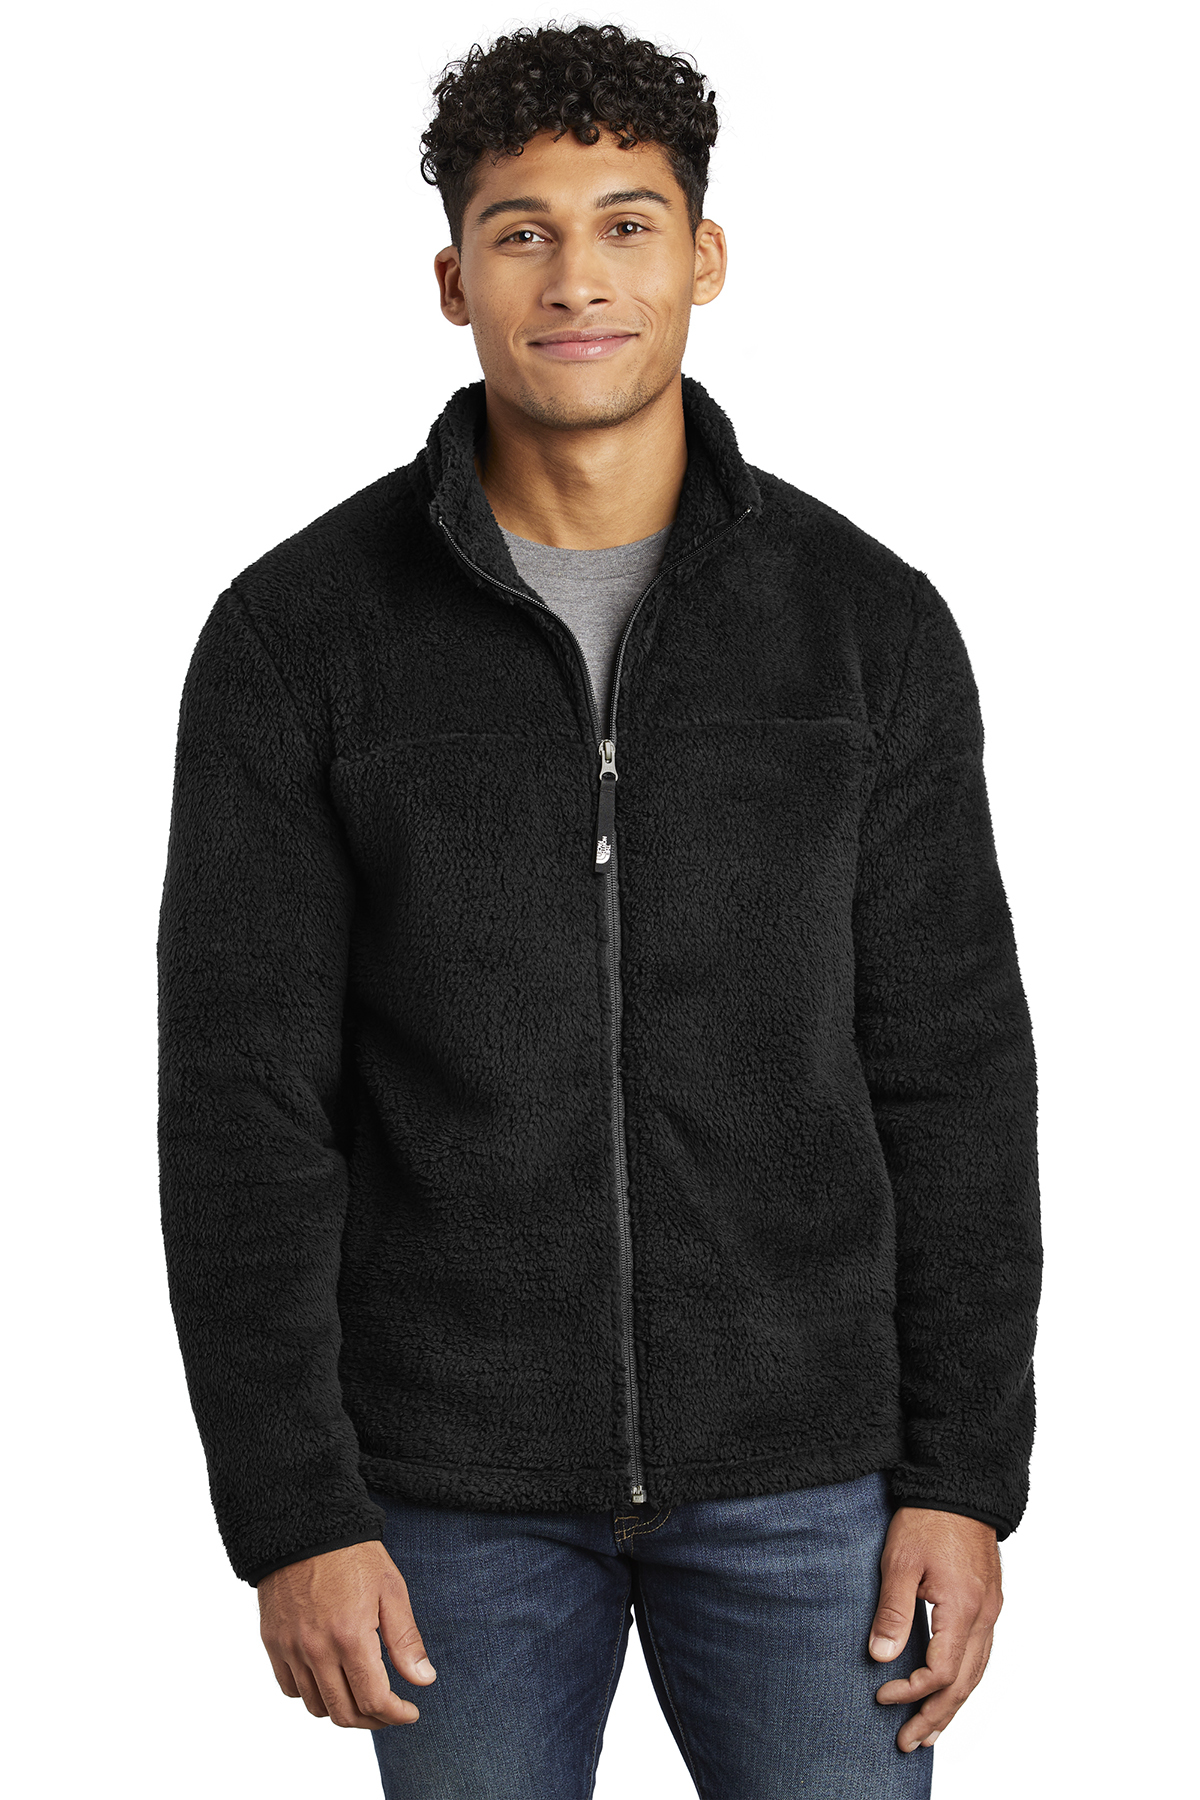 The North Face NF0A47F8 - High Loft Fleece